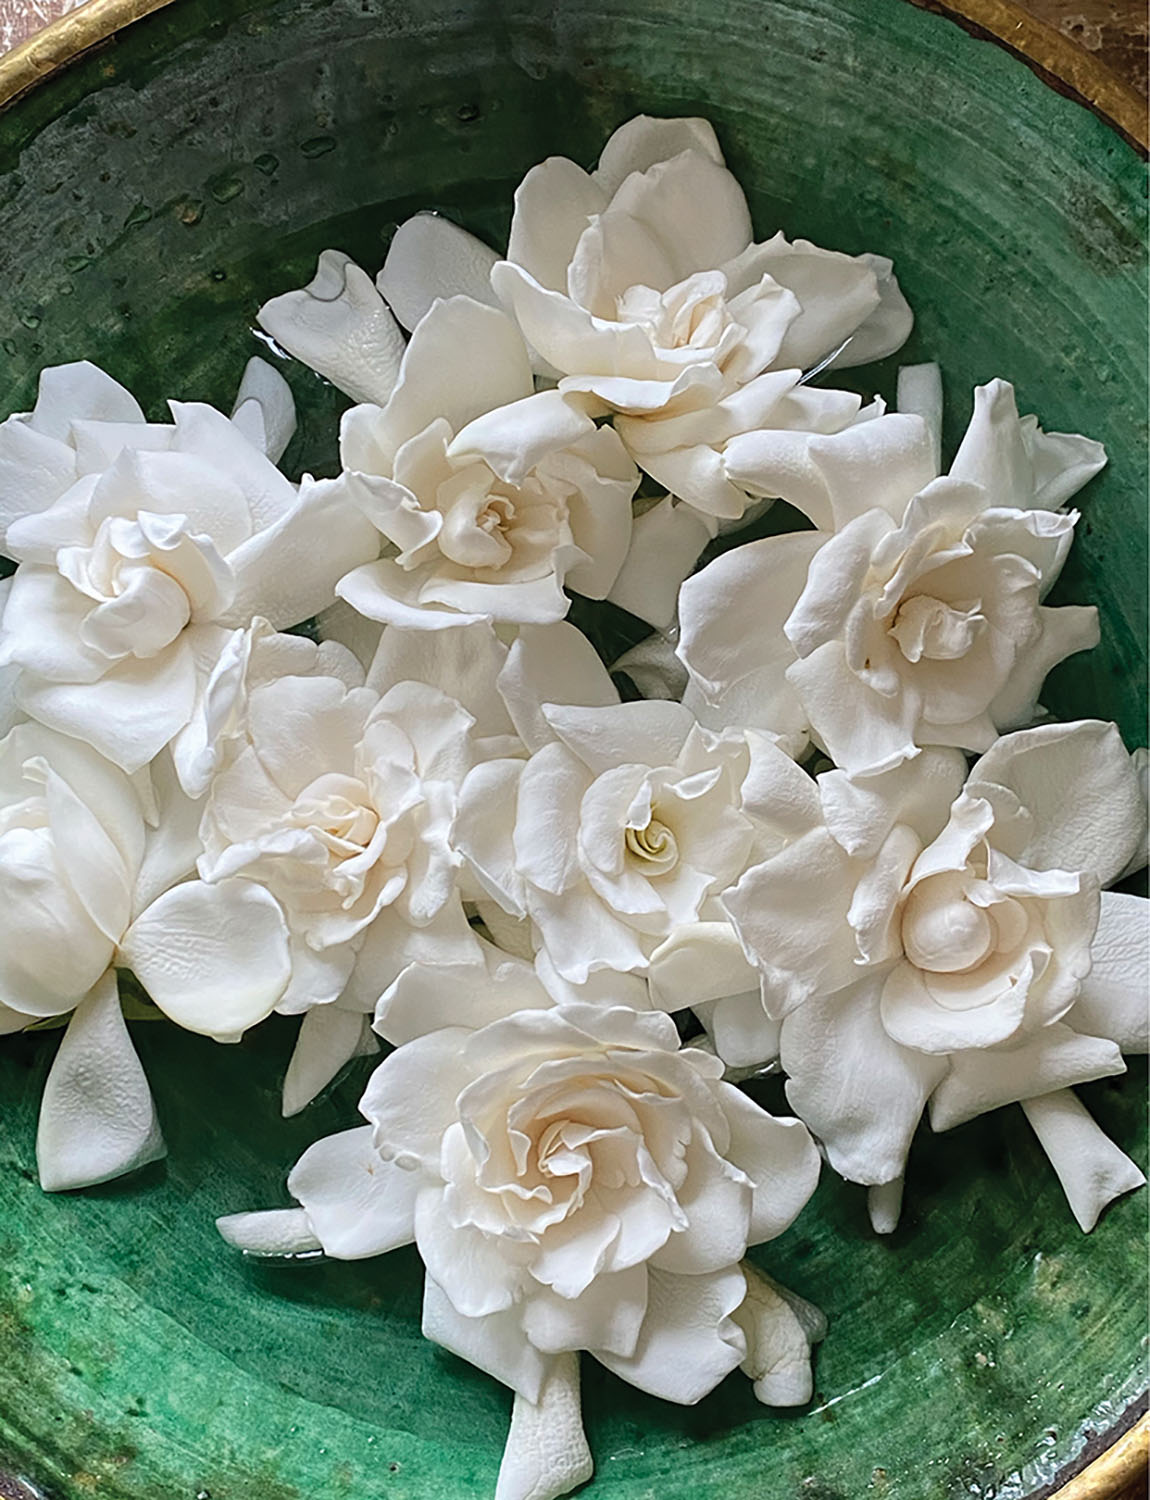 Gardenia blooms floating in a green bowl.